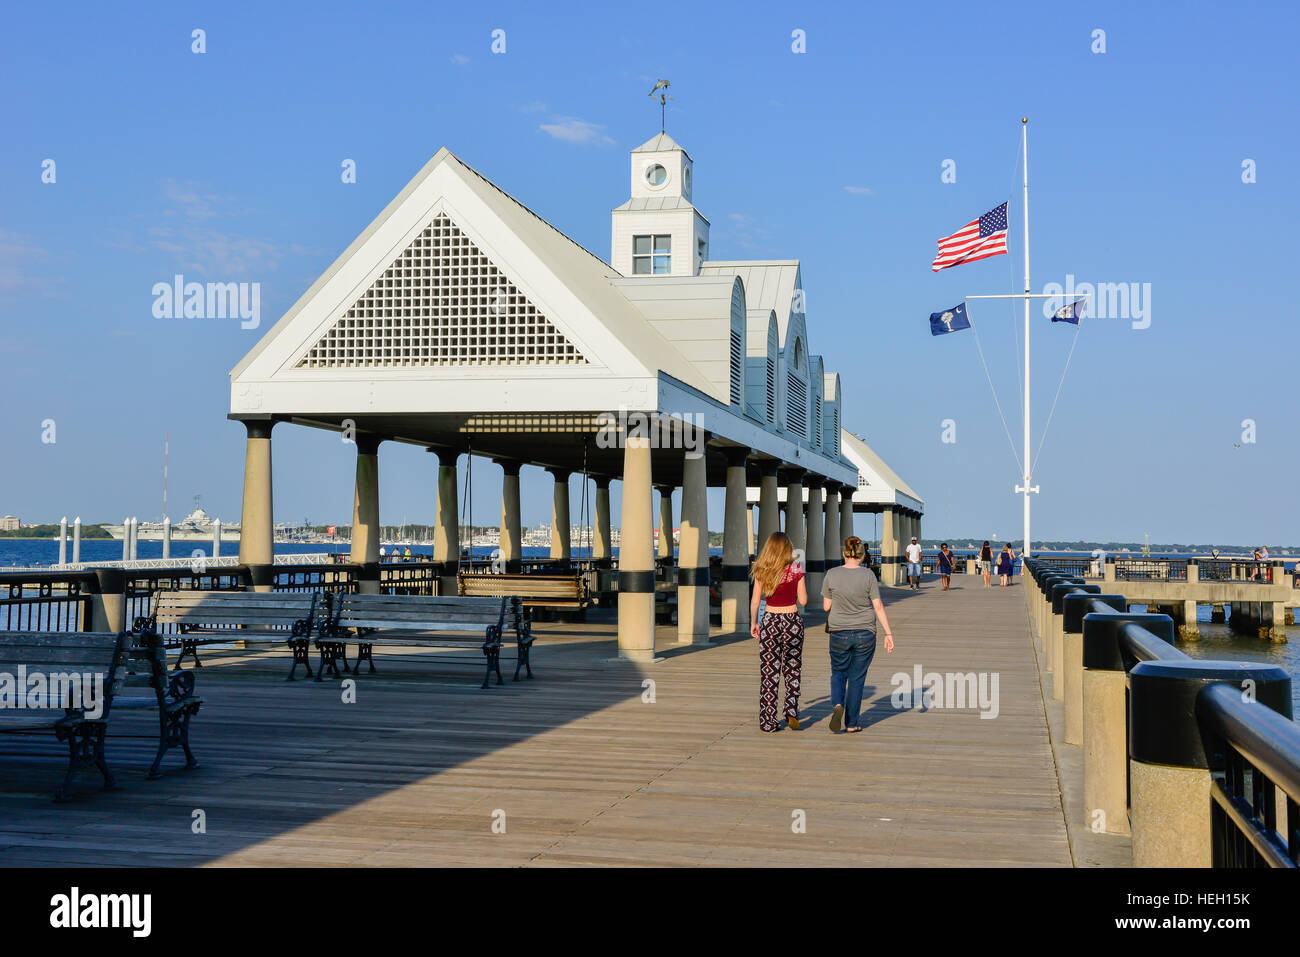 People stroll Vendue Wharf at Riverfront Park near covered shelters overlooking the Cooper River in Charleston SC - Stock Image